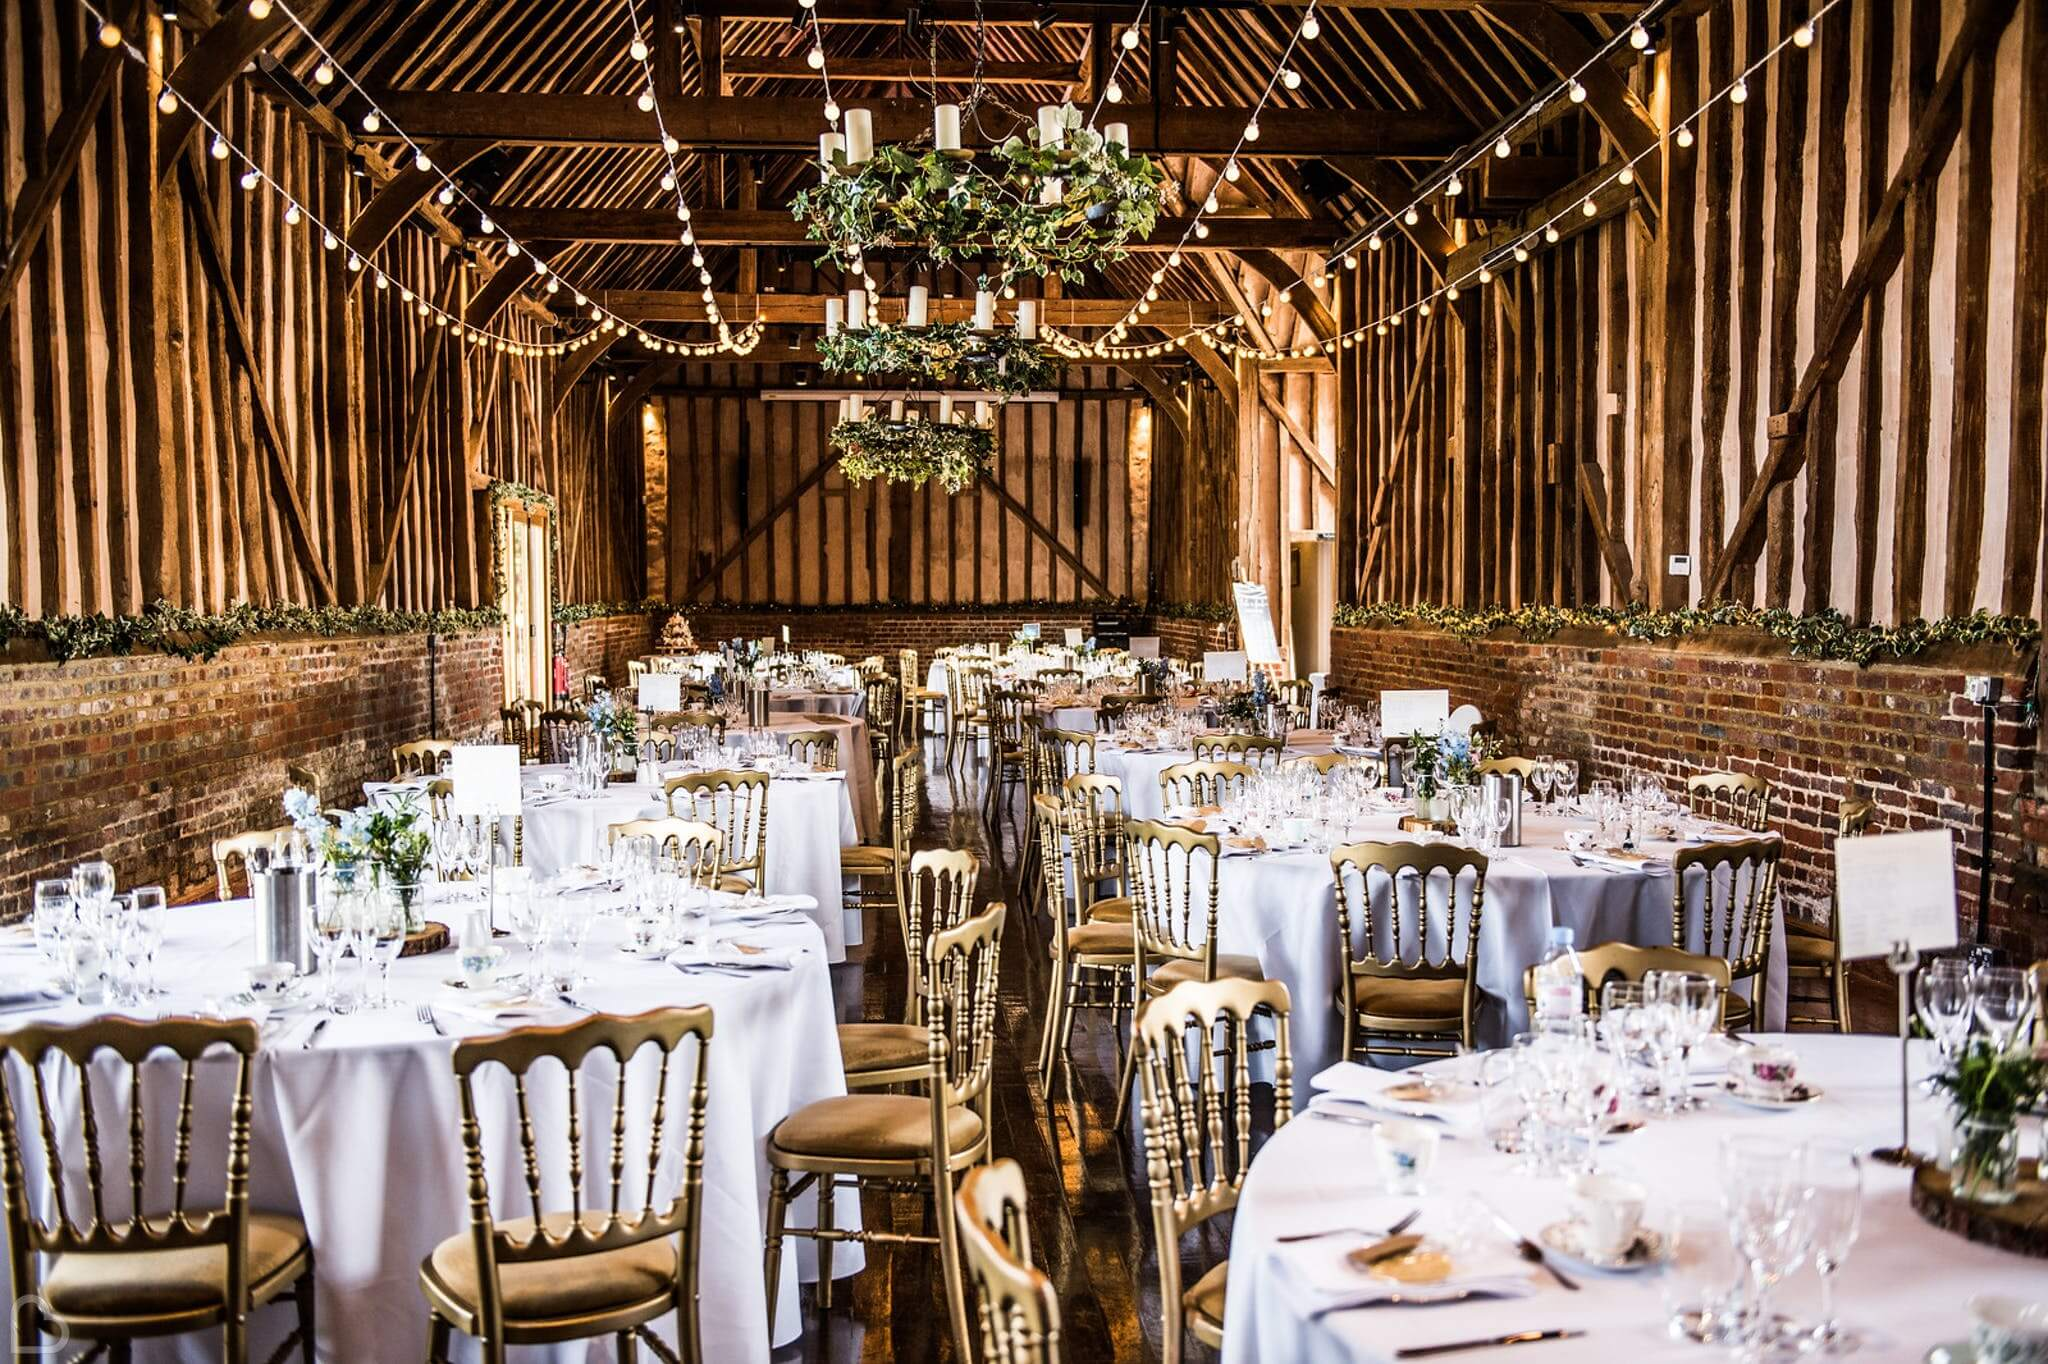 Lillibrooke Manor & Barns, a self-catering wedding venue in the UK